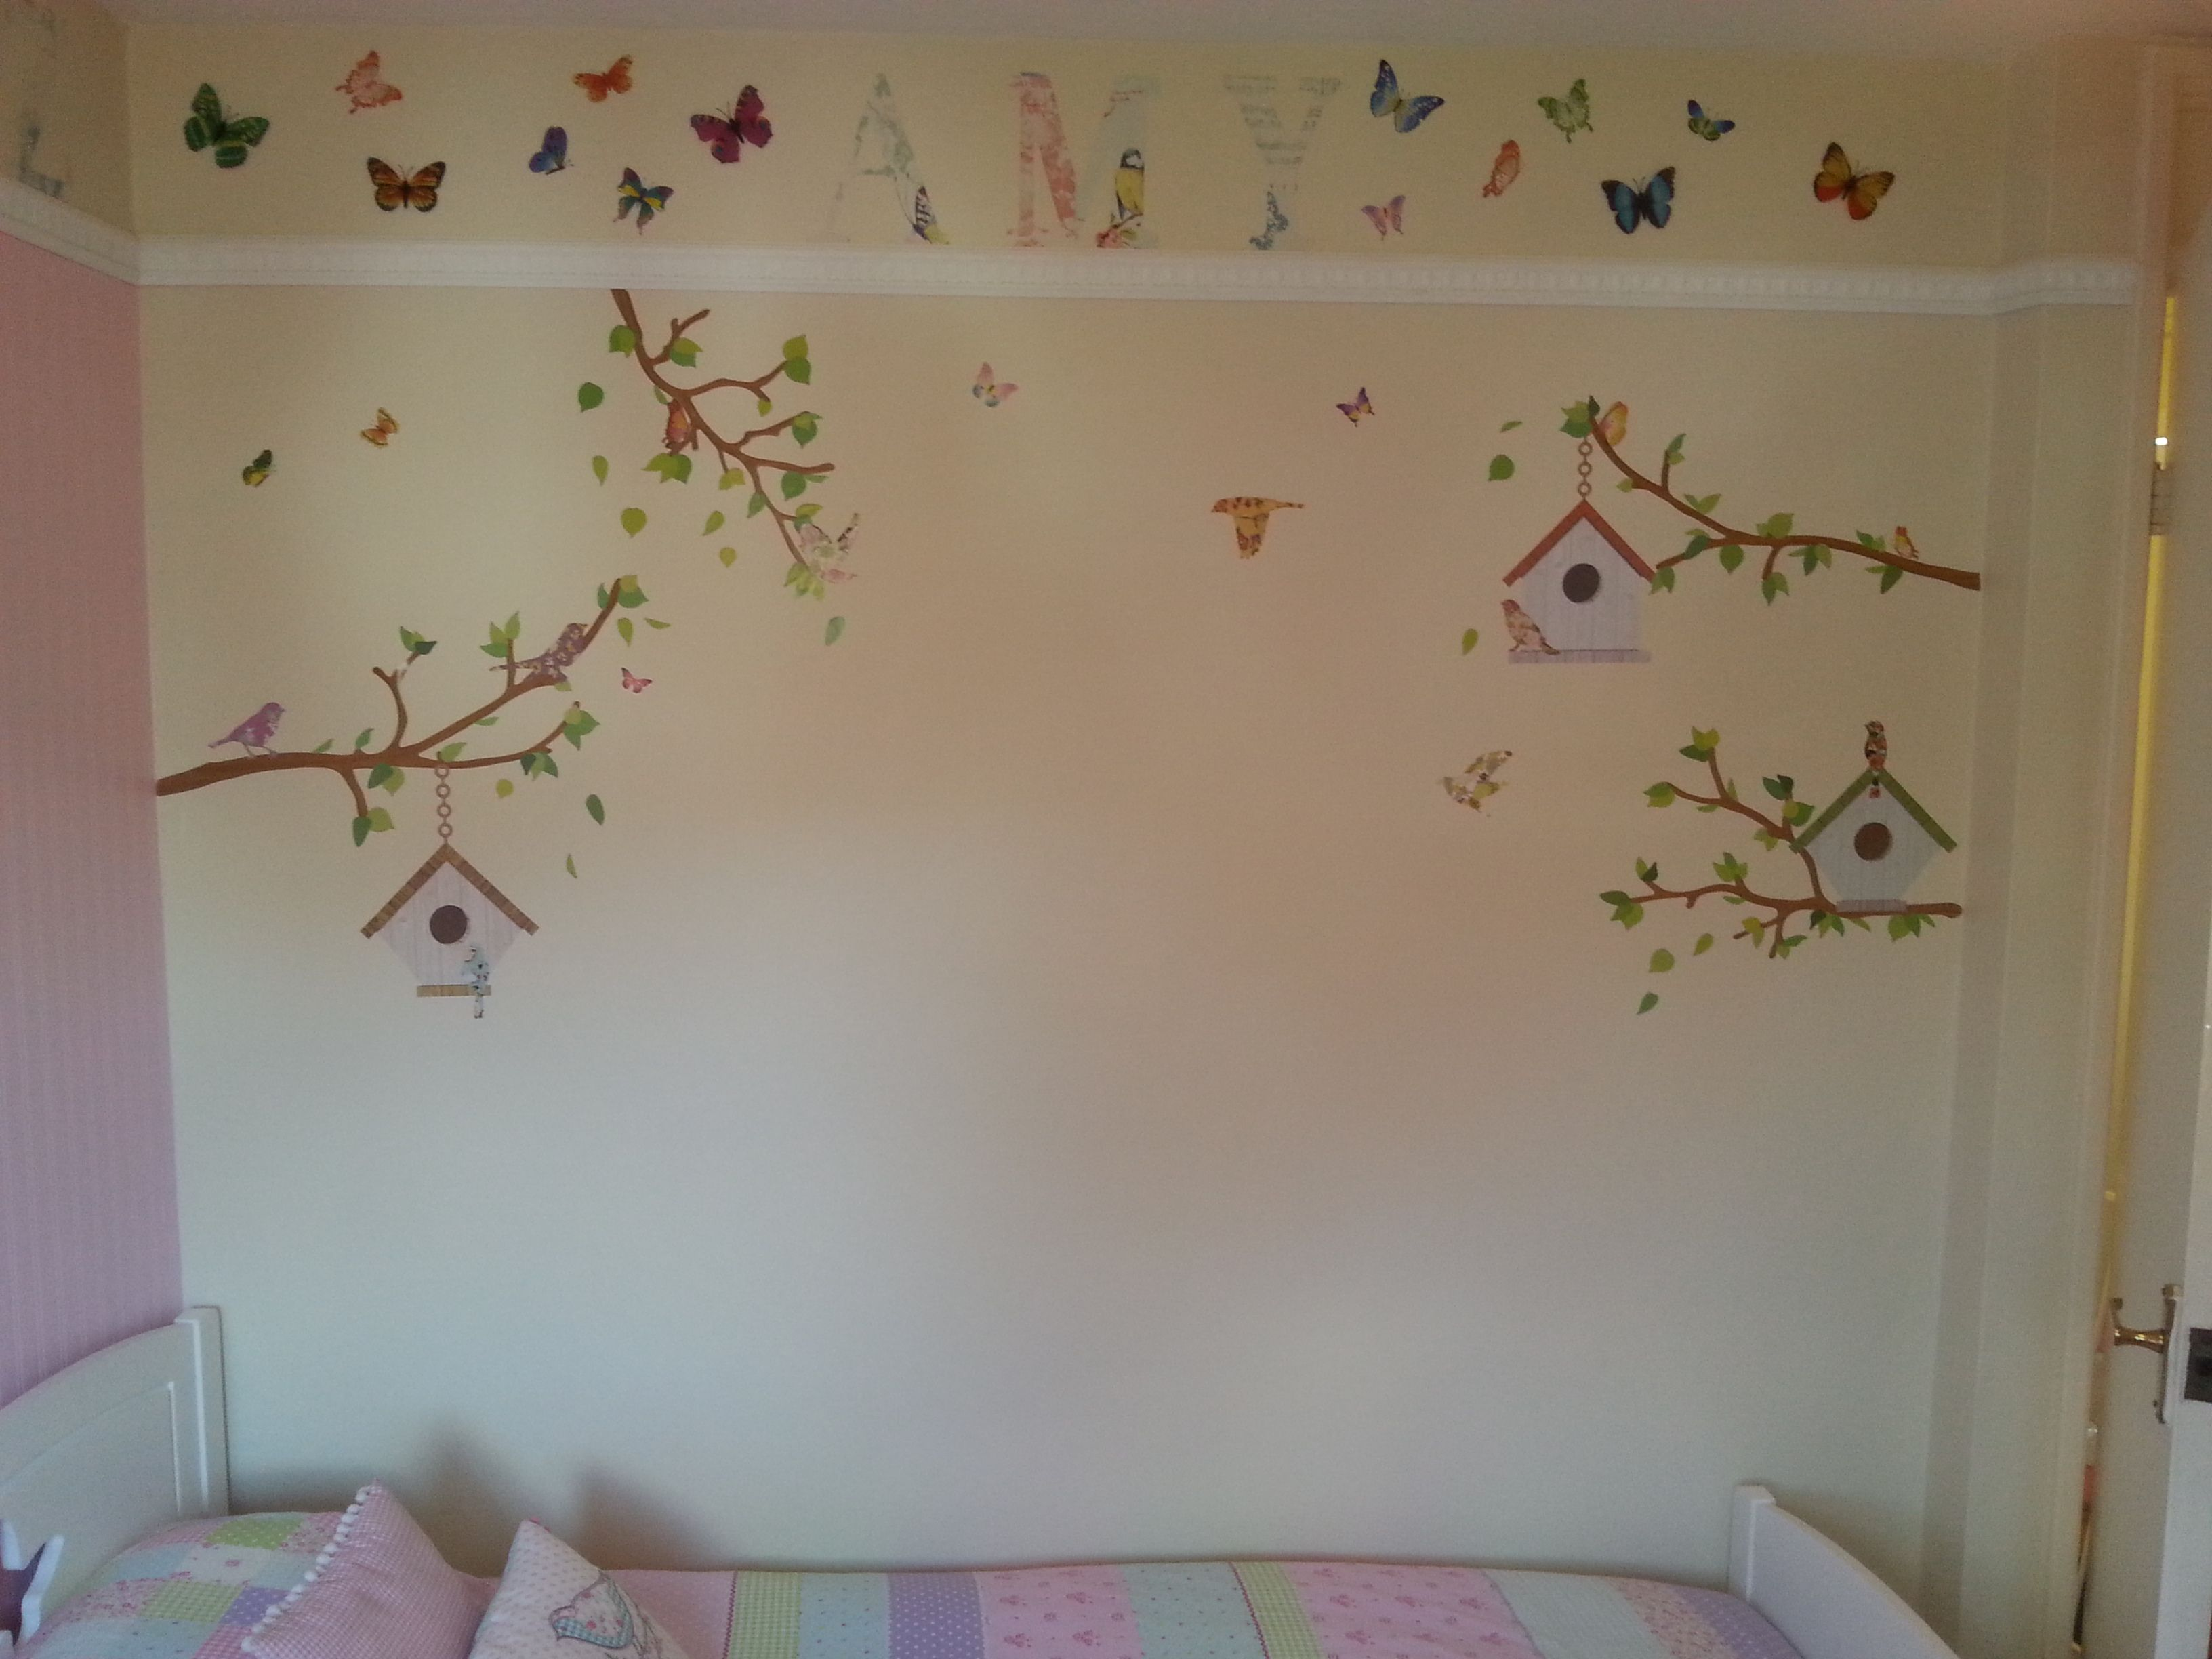 Malloom 12PCS 3D Butterfly Wall Stickers Decor DIY Art Sticker Home Wedding  Decoration for Kids Rooms